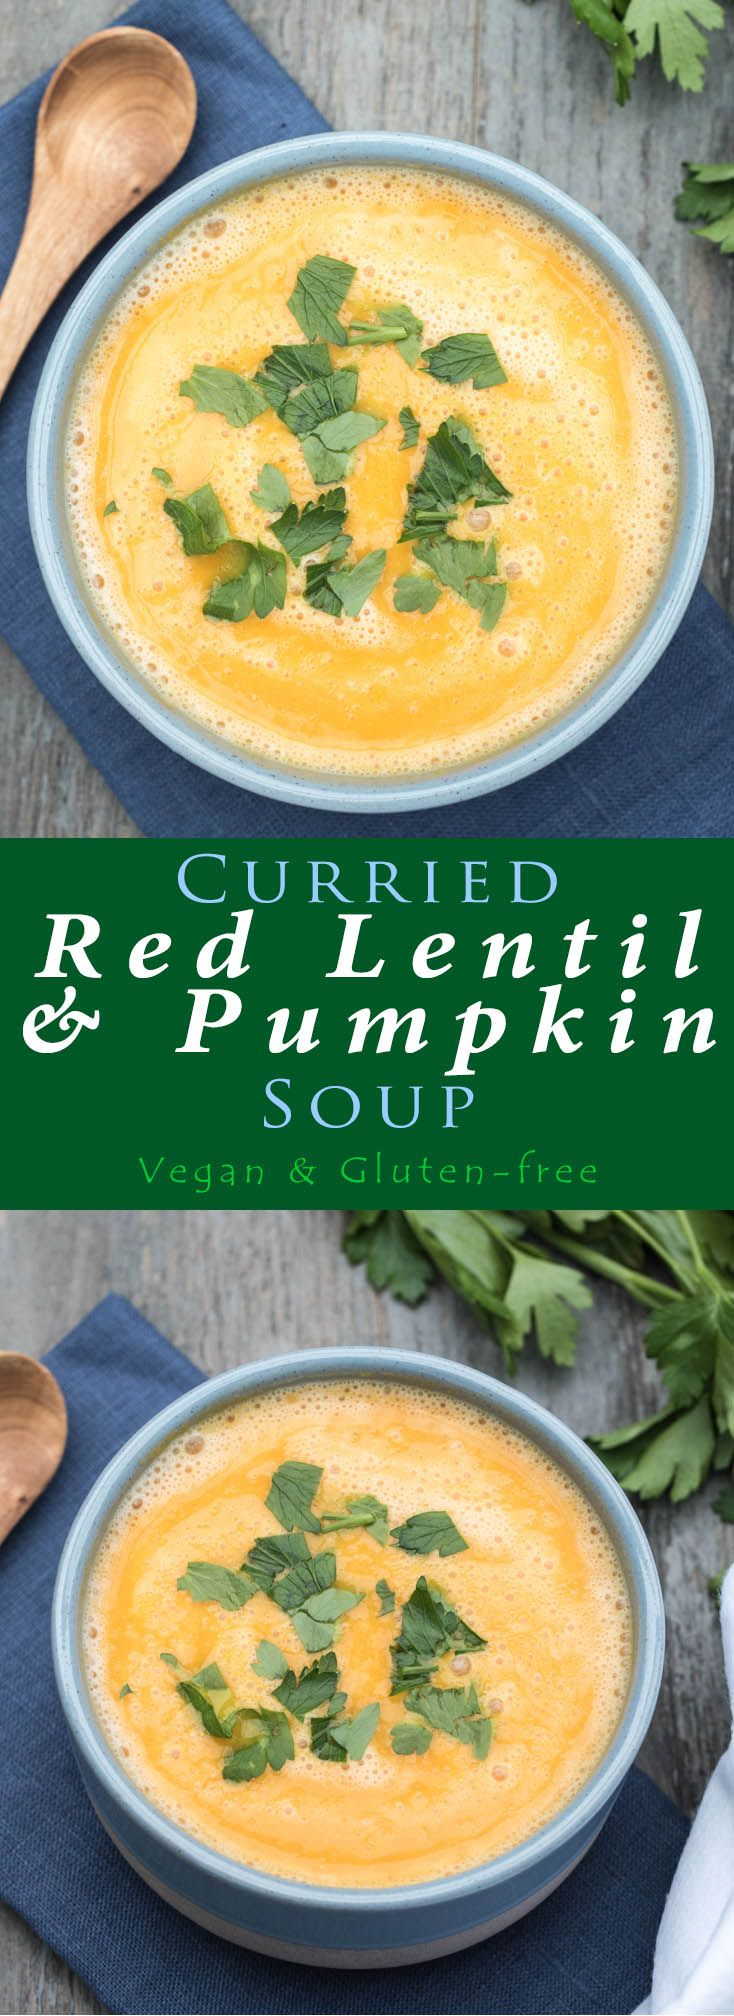 Incredibly Healthy Curried Red Lentil & Pumpkin Soup recipe that even my kids love! It's full of iron, fiber, and plant-based protein. Vegan and Gluten-free as well! /// VeganFamilyRecipes.com /// #autumn #soups